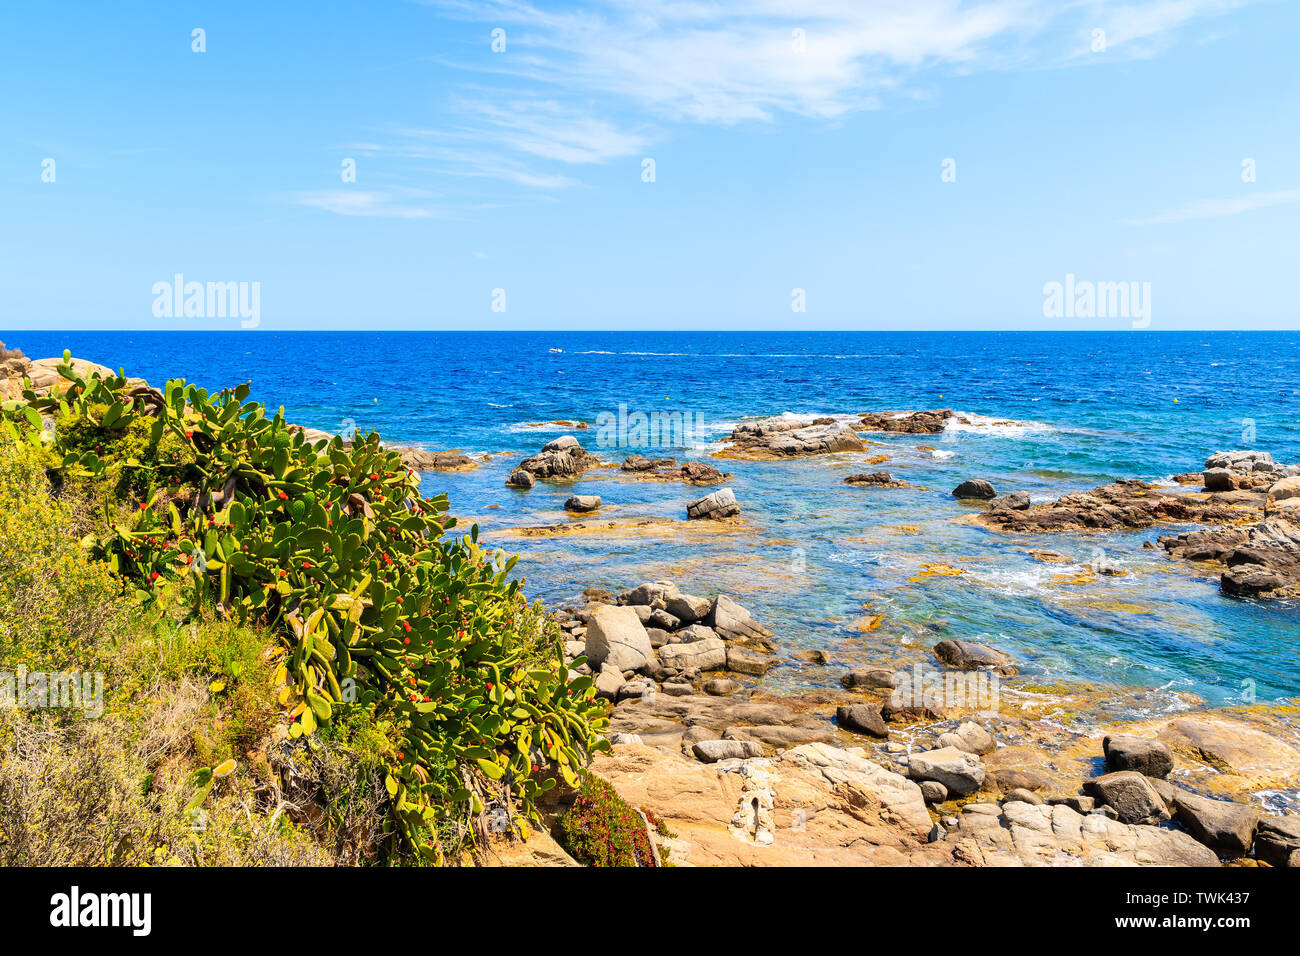 Beautiful bay with boats on sea and view of Llafranc village, Costa Brava, Spain Stock Photo